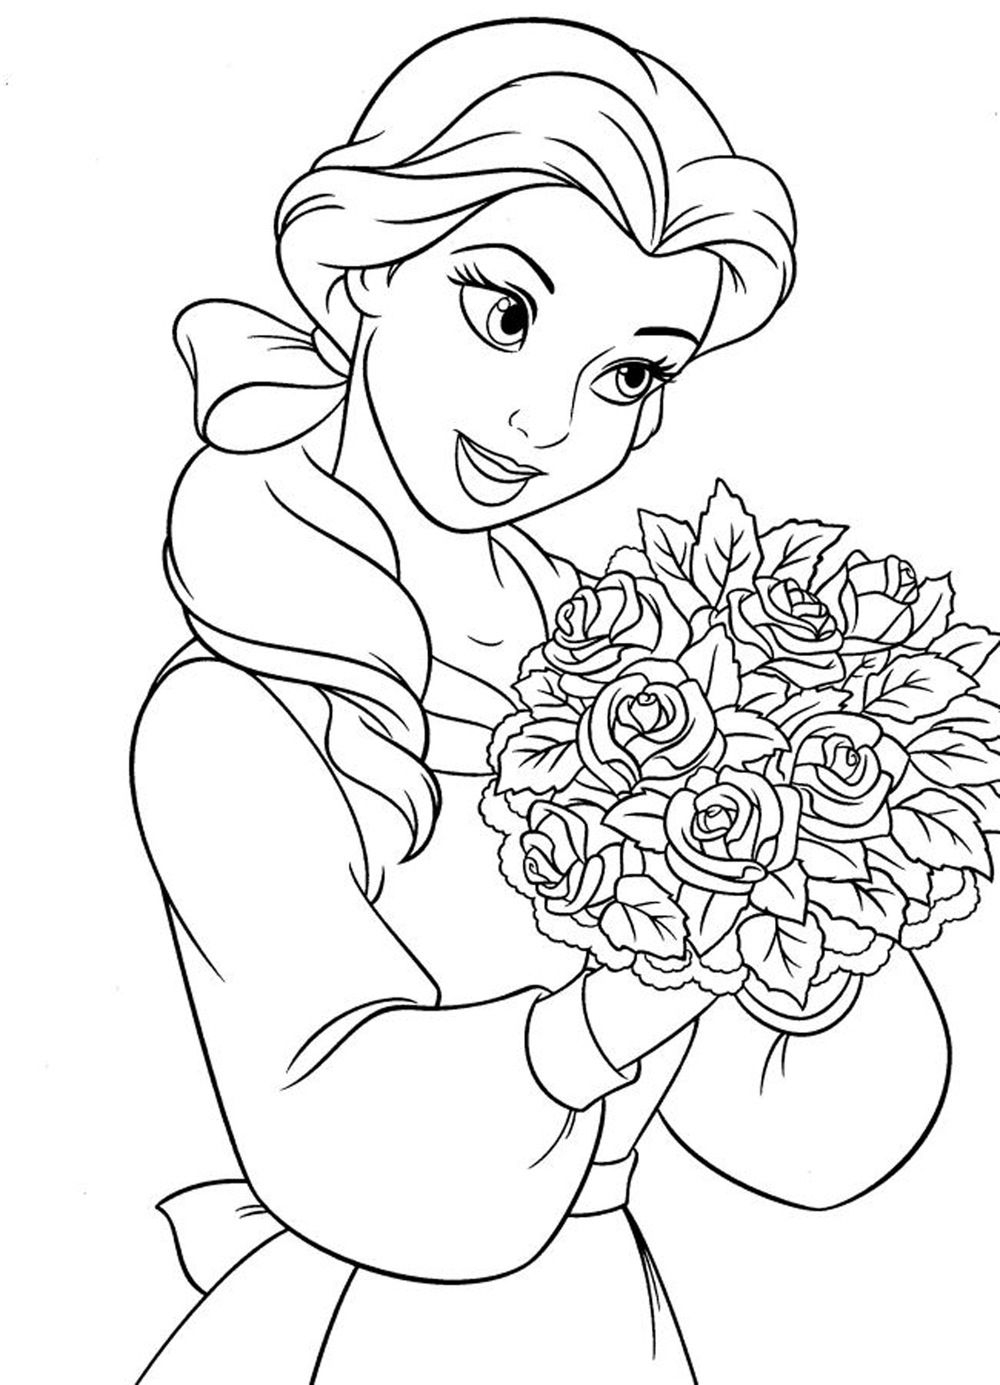 Coloring Pages for Girls Printable 18p - Free For Children